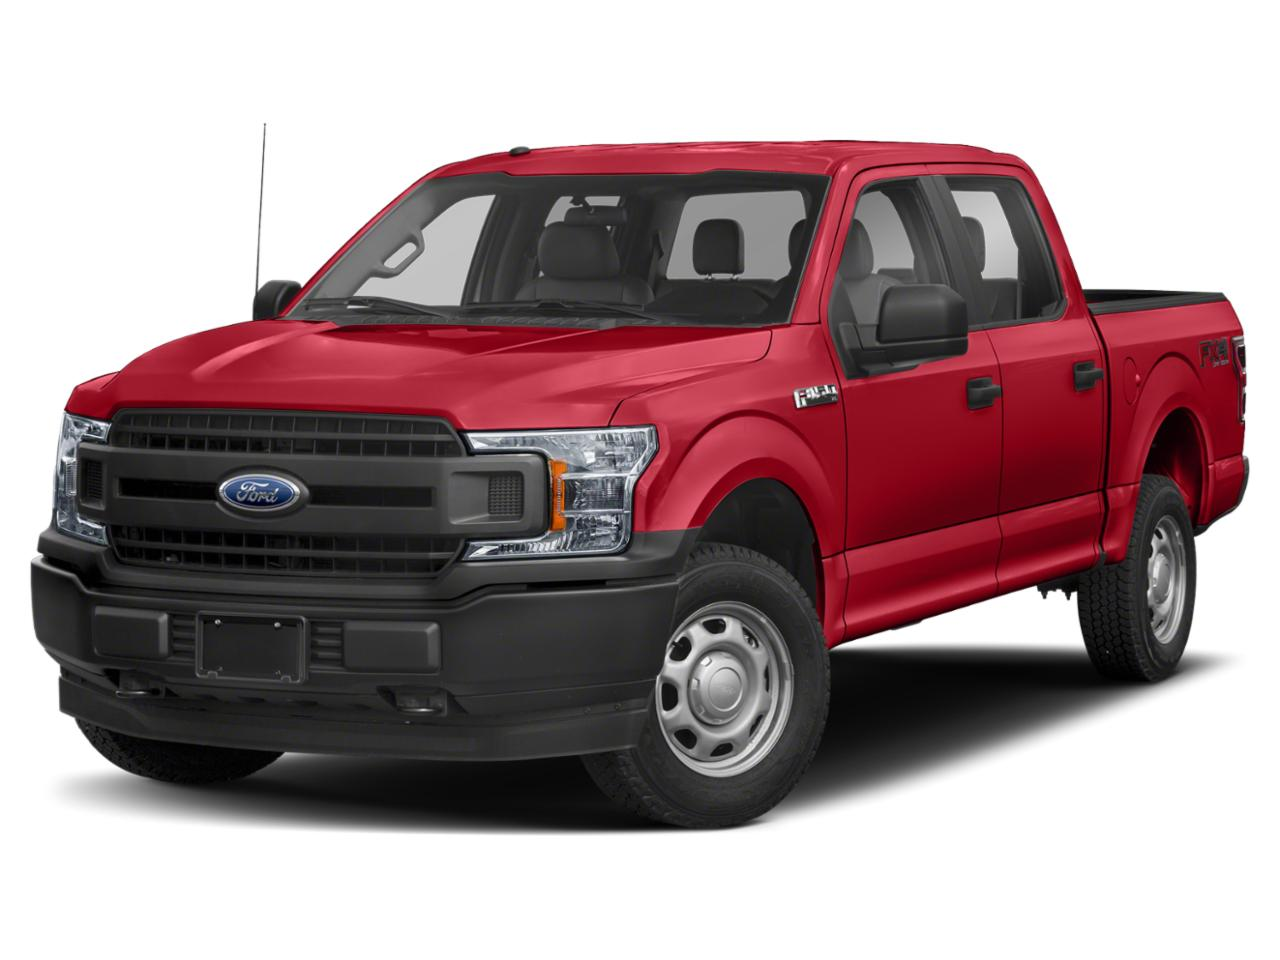 Race Red 2019 Ford F-150 XL Crew Cab Pickup Durham NC